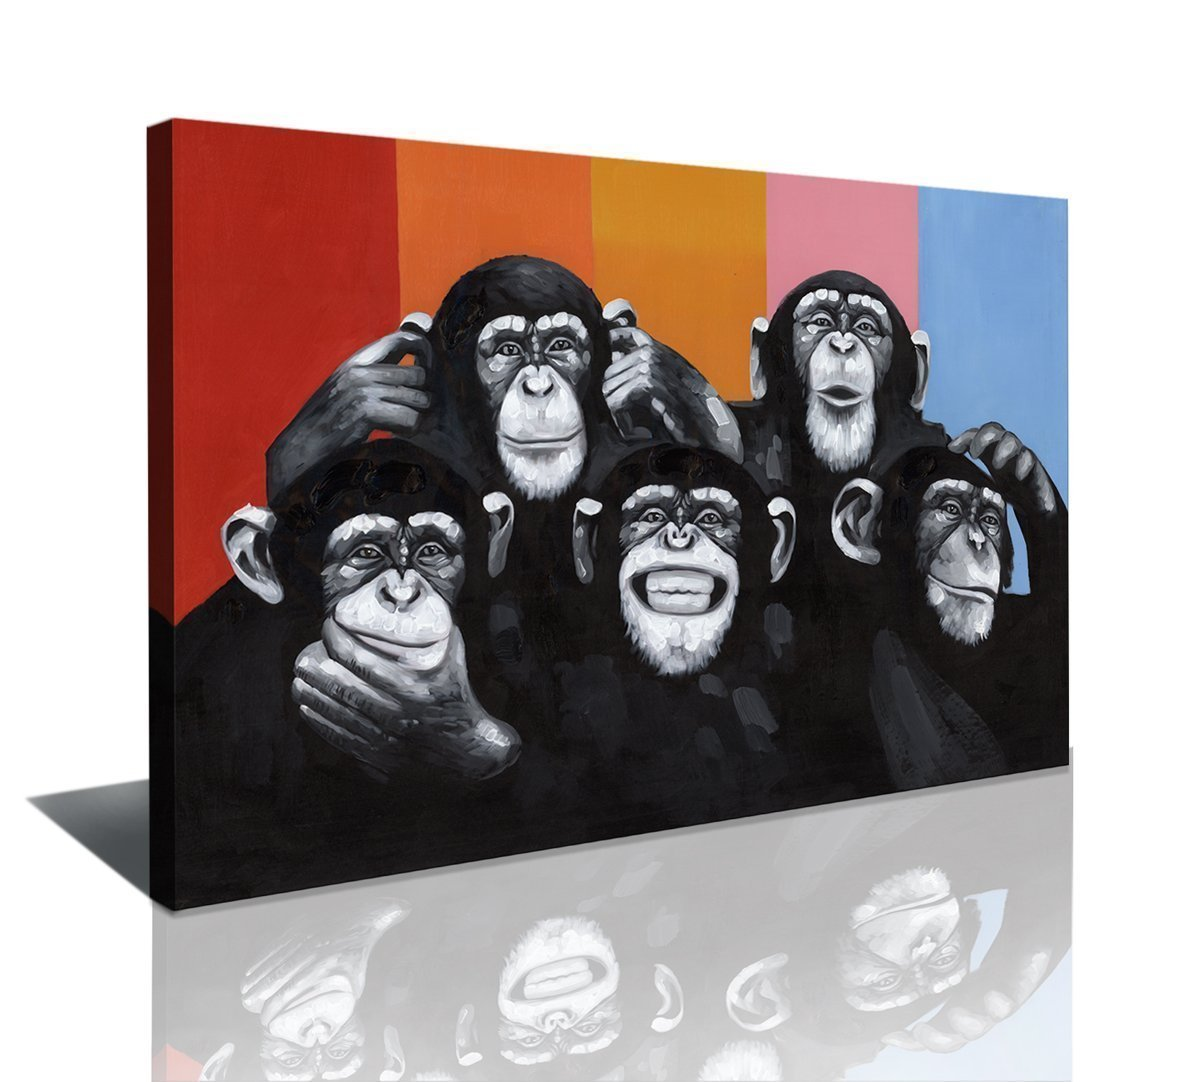 Formarkor Art Animals Canvas Print Wall Art,Modern Black And White Gorilla Monkey Oil Painting Wall Painting Canvas Painting Home Decor Animal Prints (24''x32'') by Formarkor Art